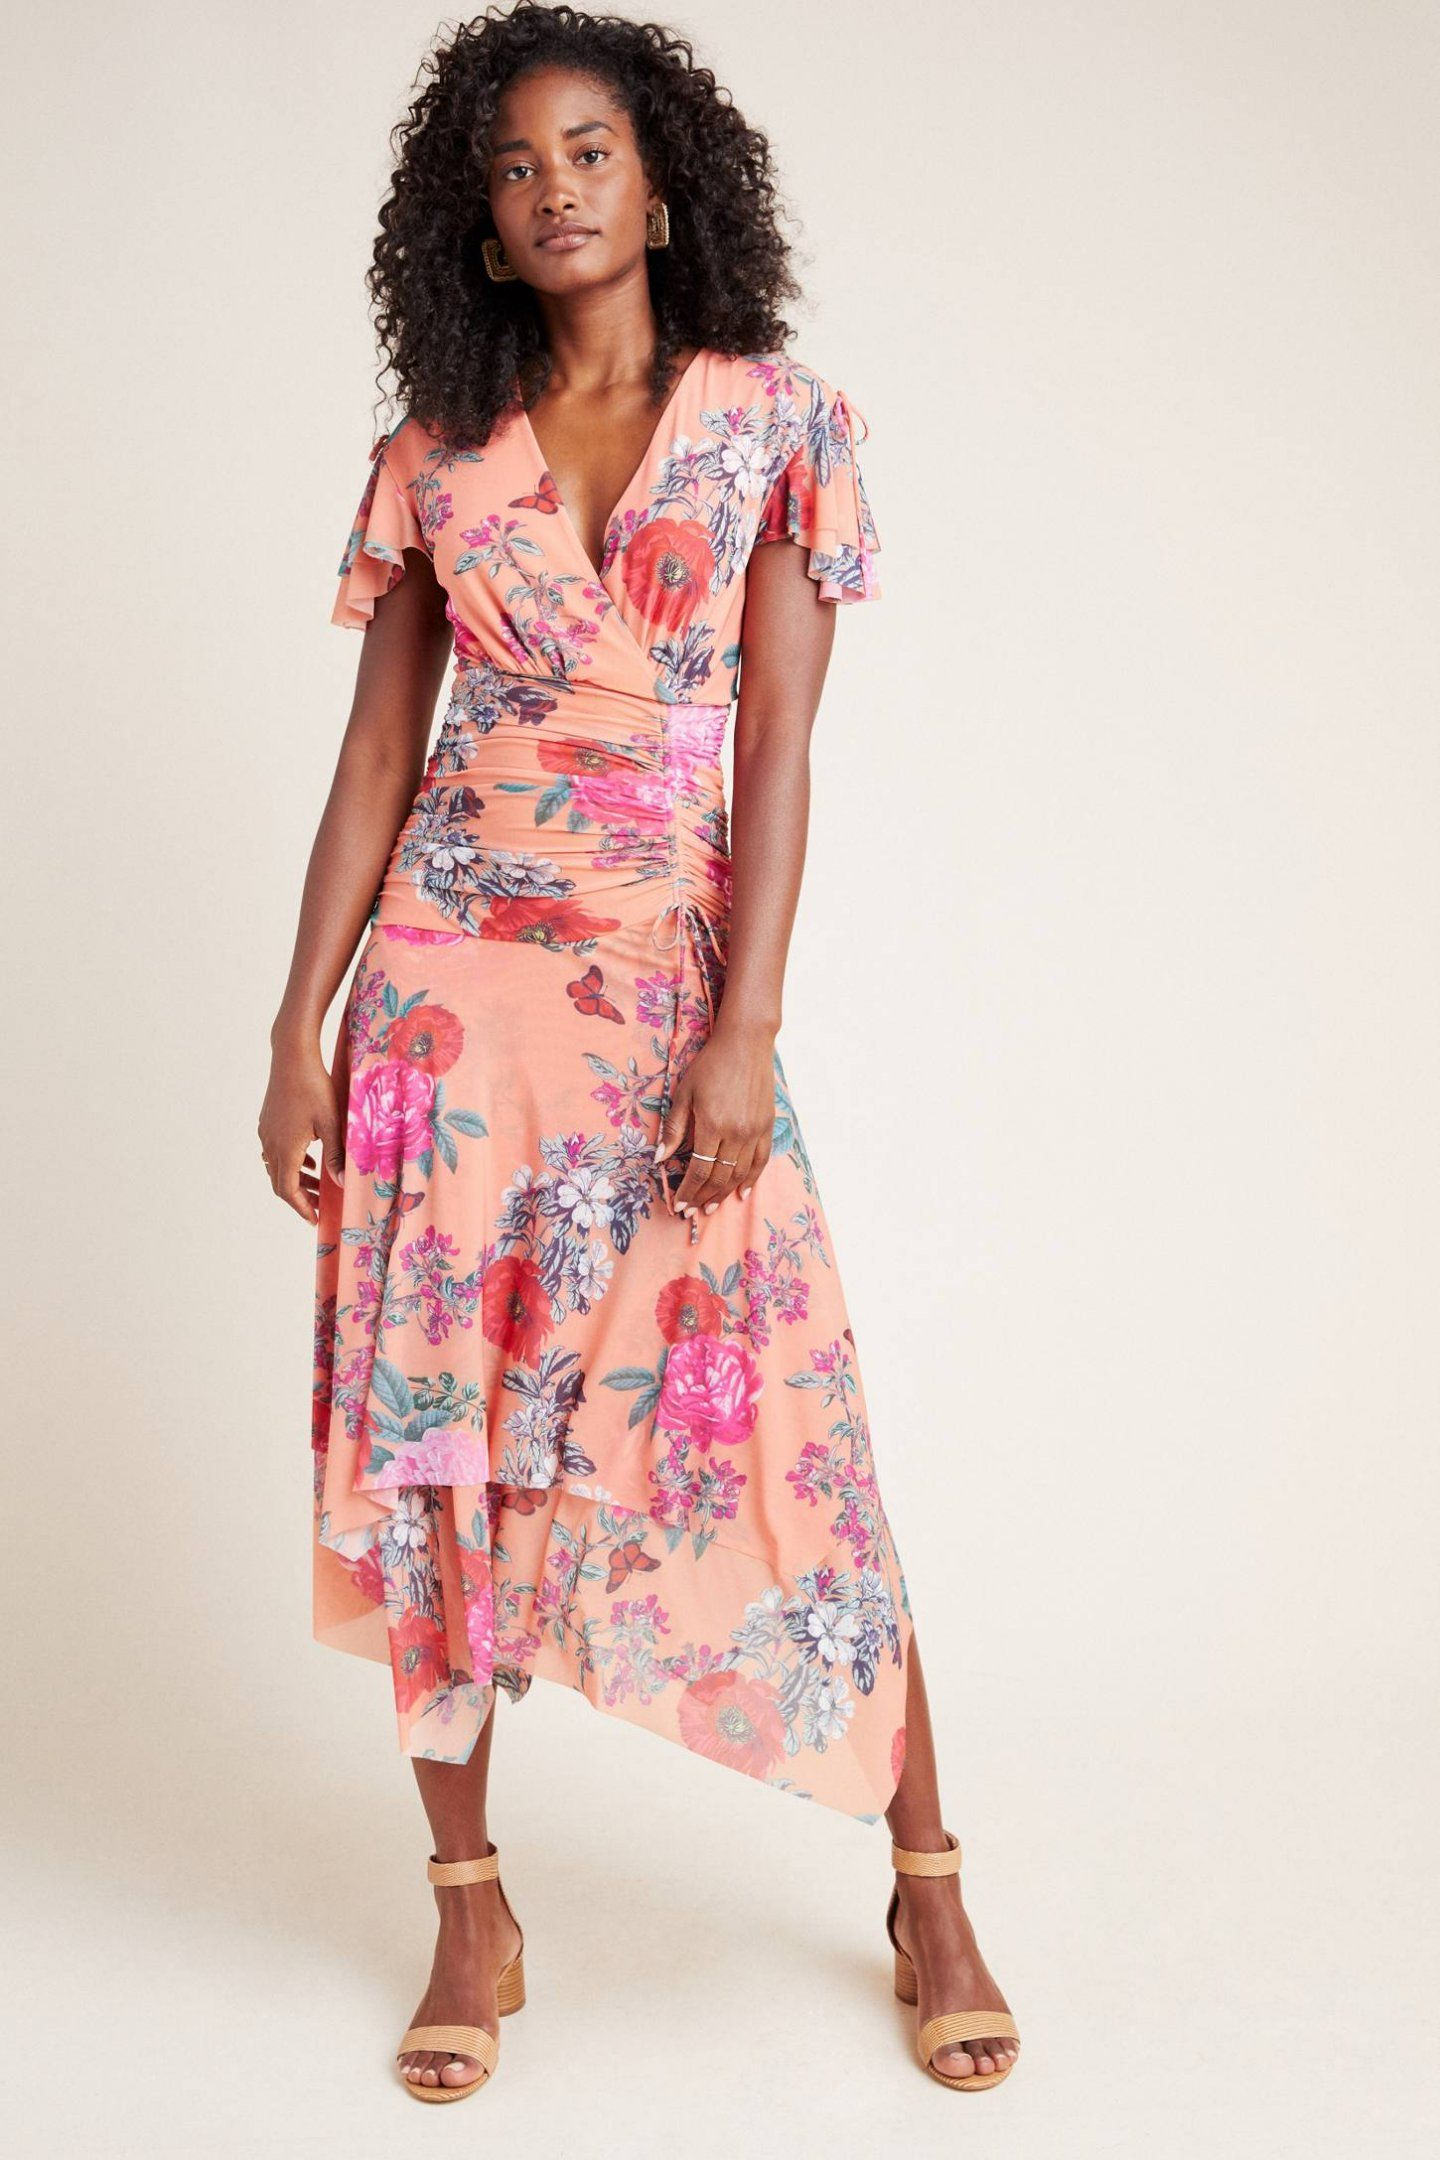 These Labor Day Sales Will Give You A Head Start On Fall Dressing Floral Midi Dress Long Dresses Casual Maxi Maxi Dress Size 16 [ 2160 x 1440 Pixel ]